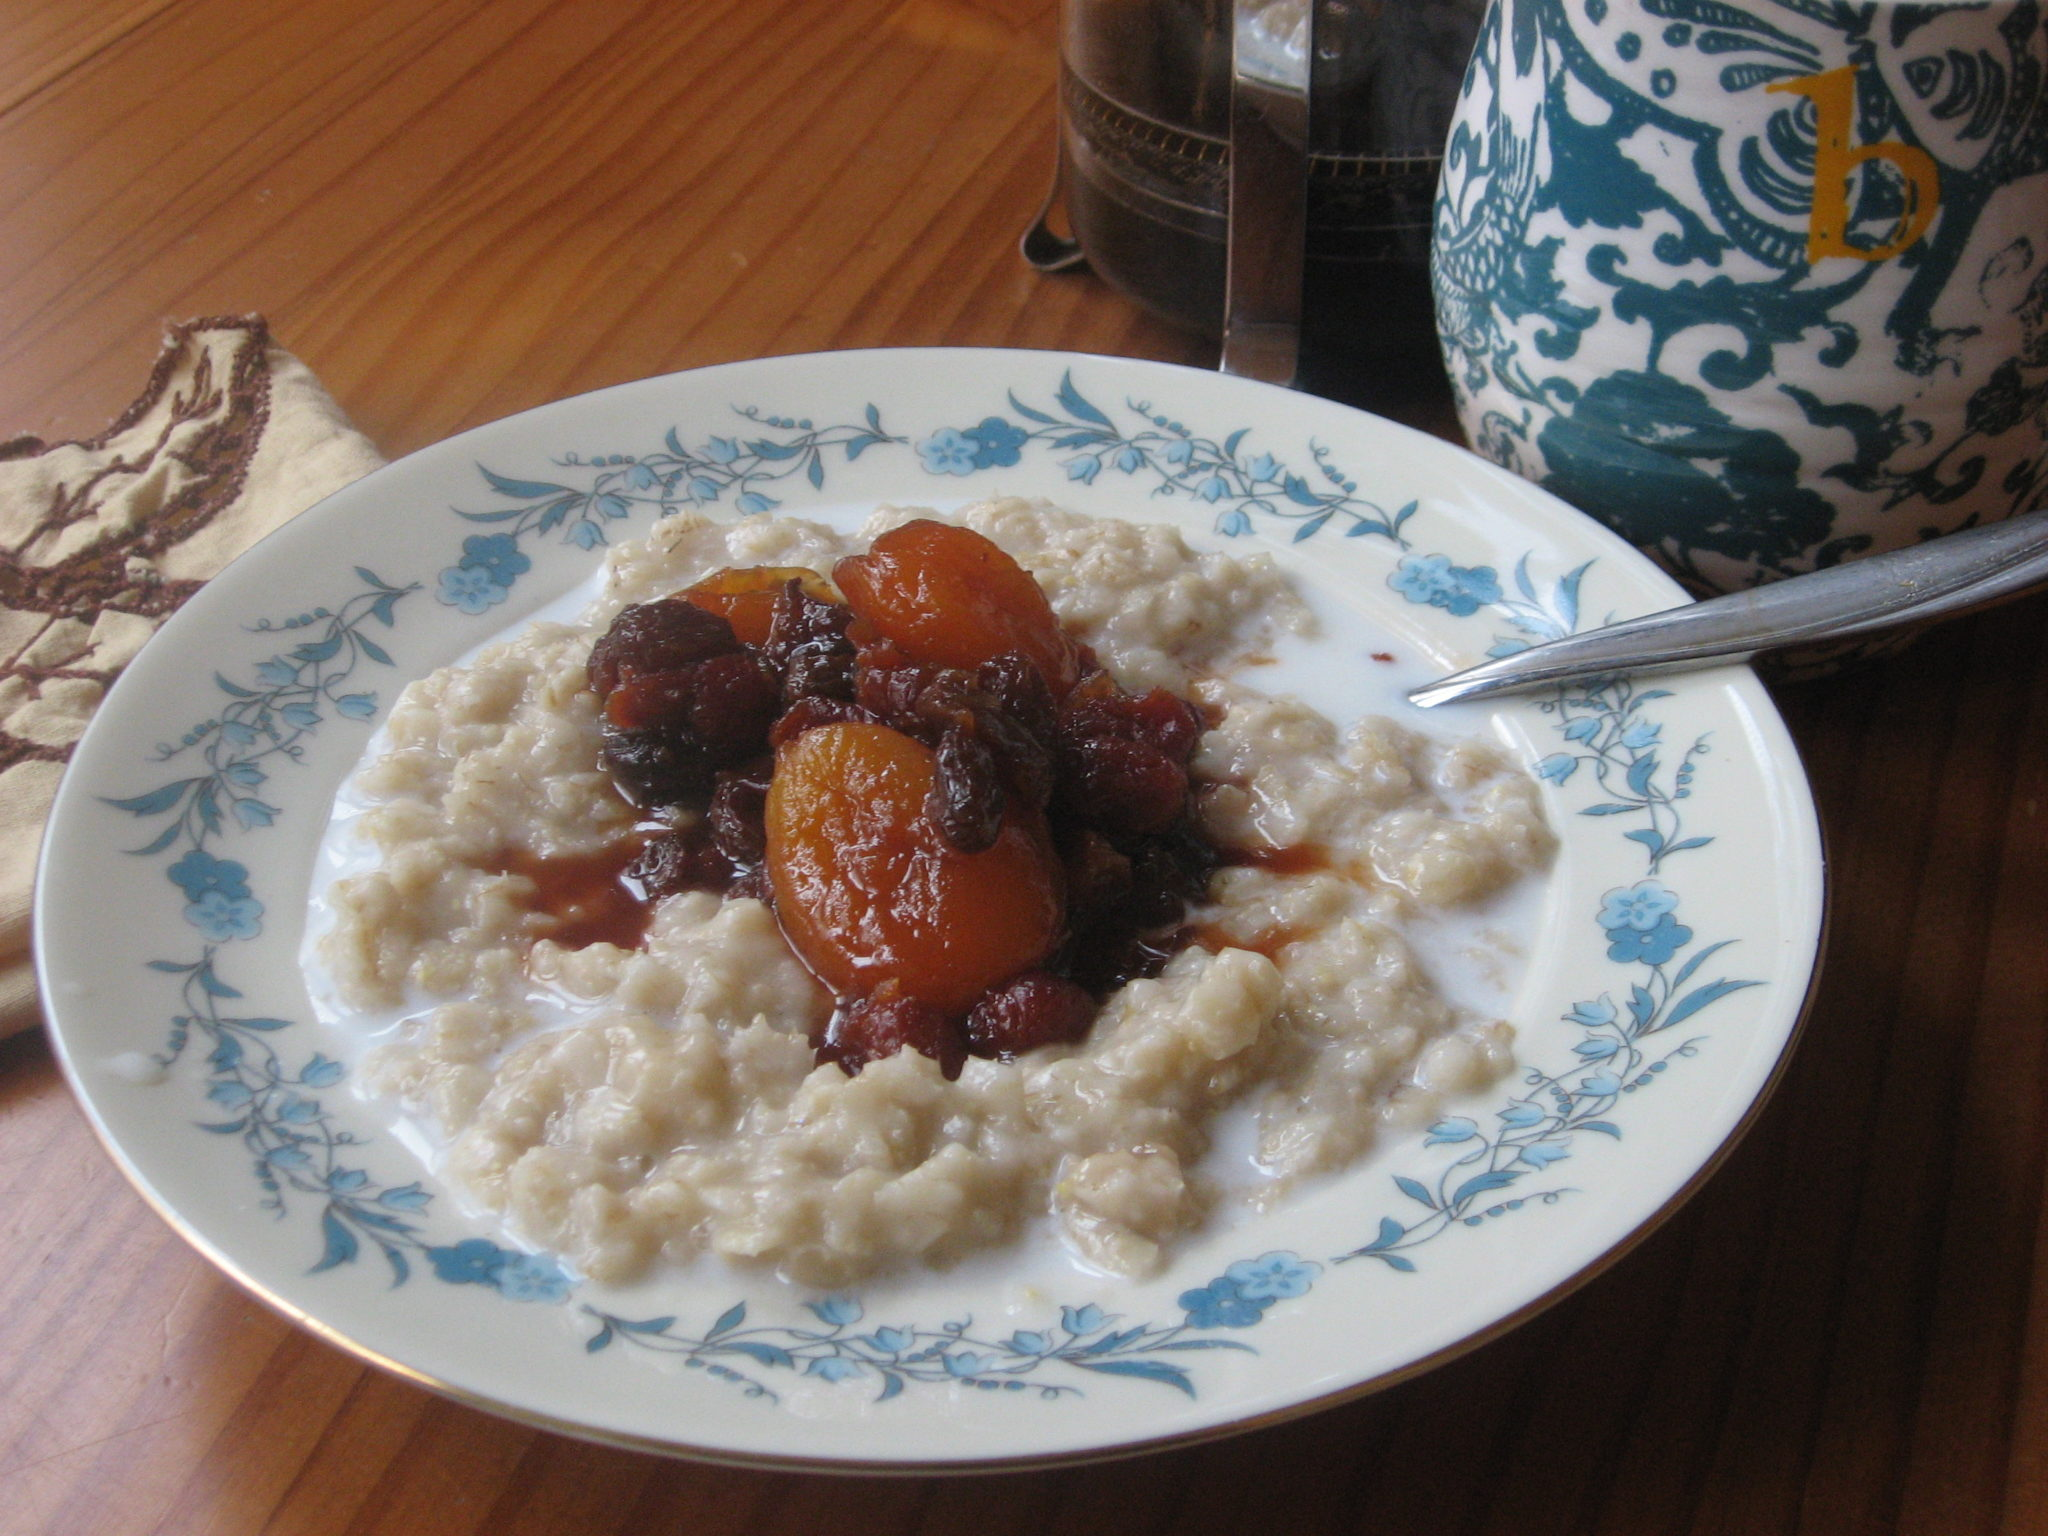 Oatmeal with Fruit Compot